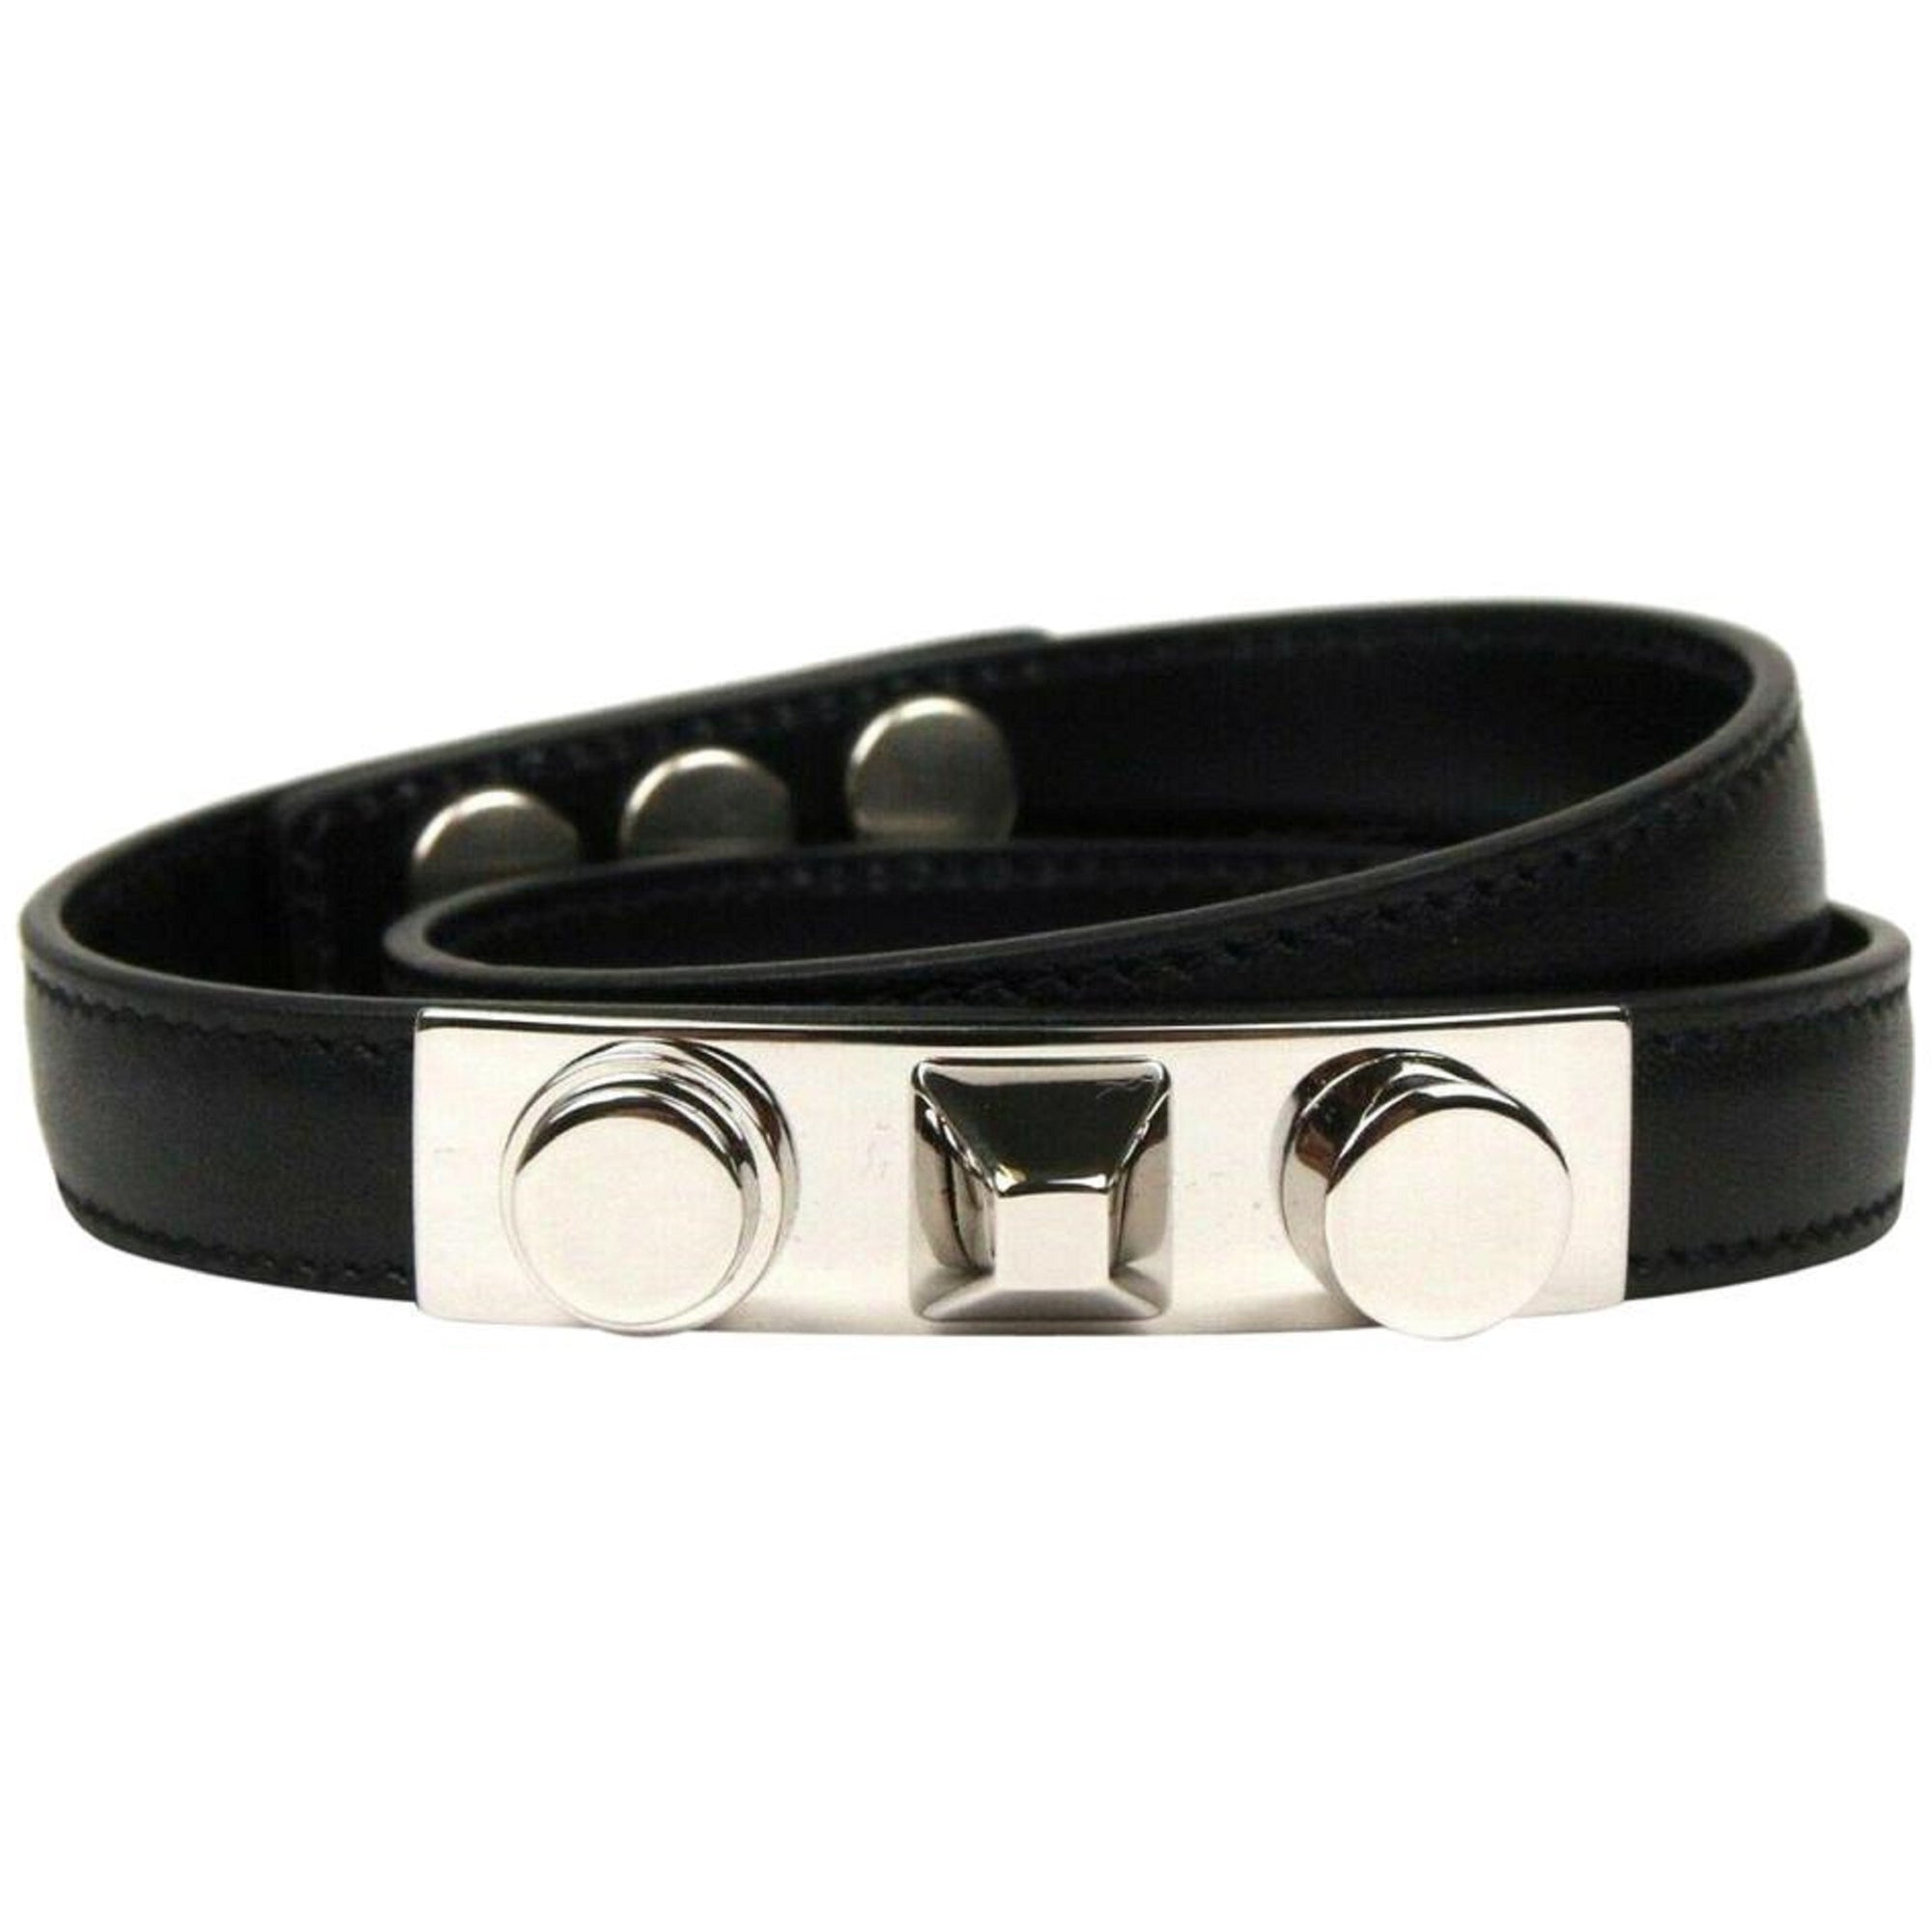 Saint Laurent YSL Wrap Bracelet Silver Tone Studs Black Leather Medium 420121